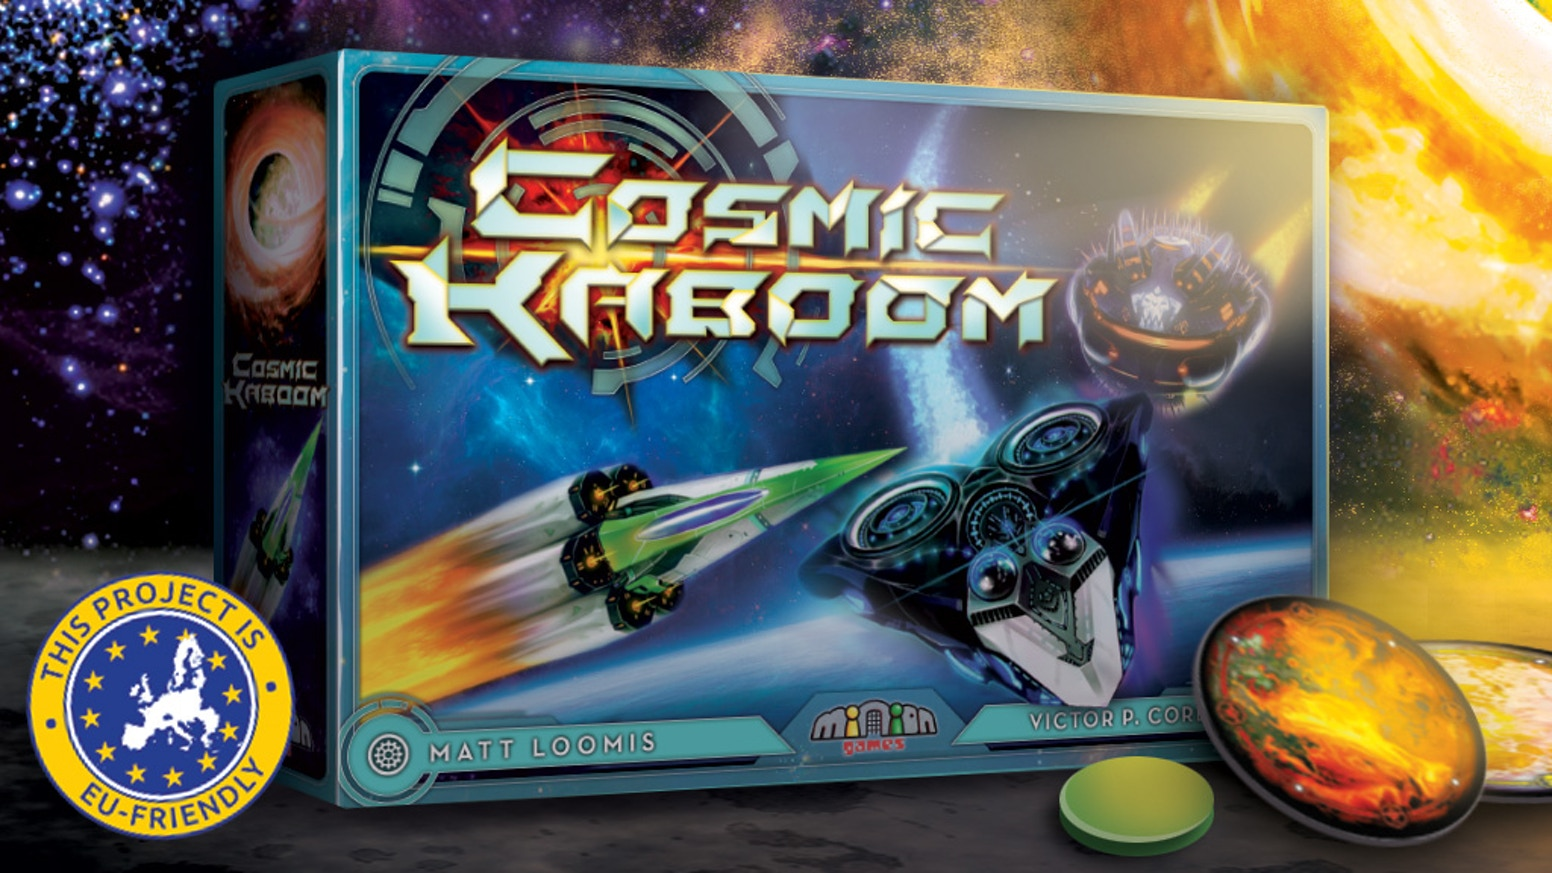 Players fly (flick) their space ships around space, collecting energy to power up space bombs and eradicate their enemies.